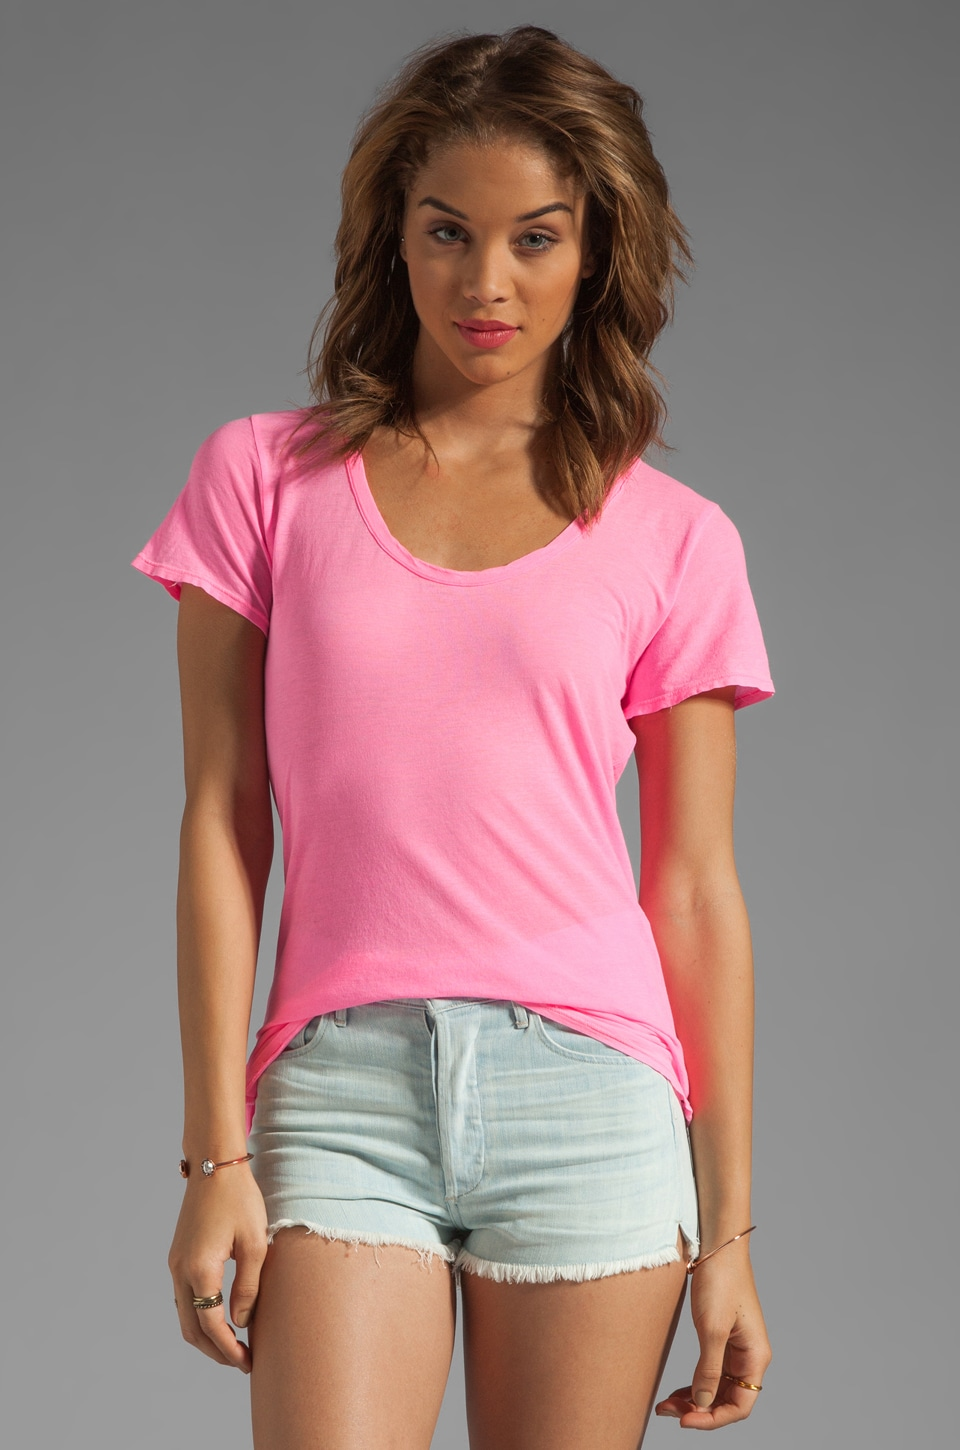 SUNDRY Light Jersey Basic Crew in Neon Pink